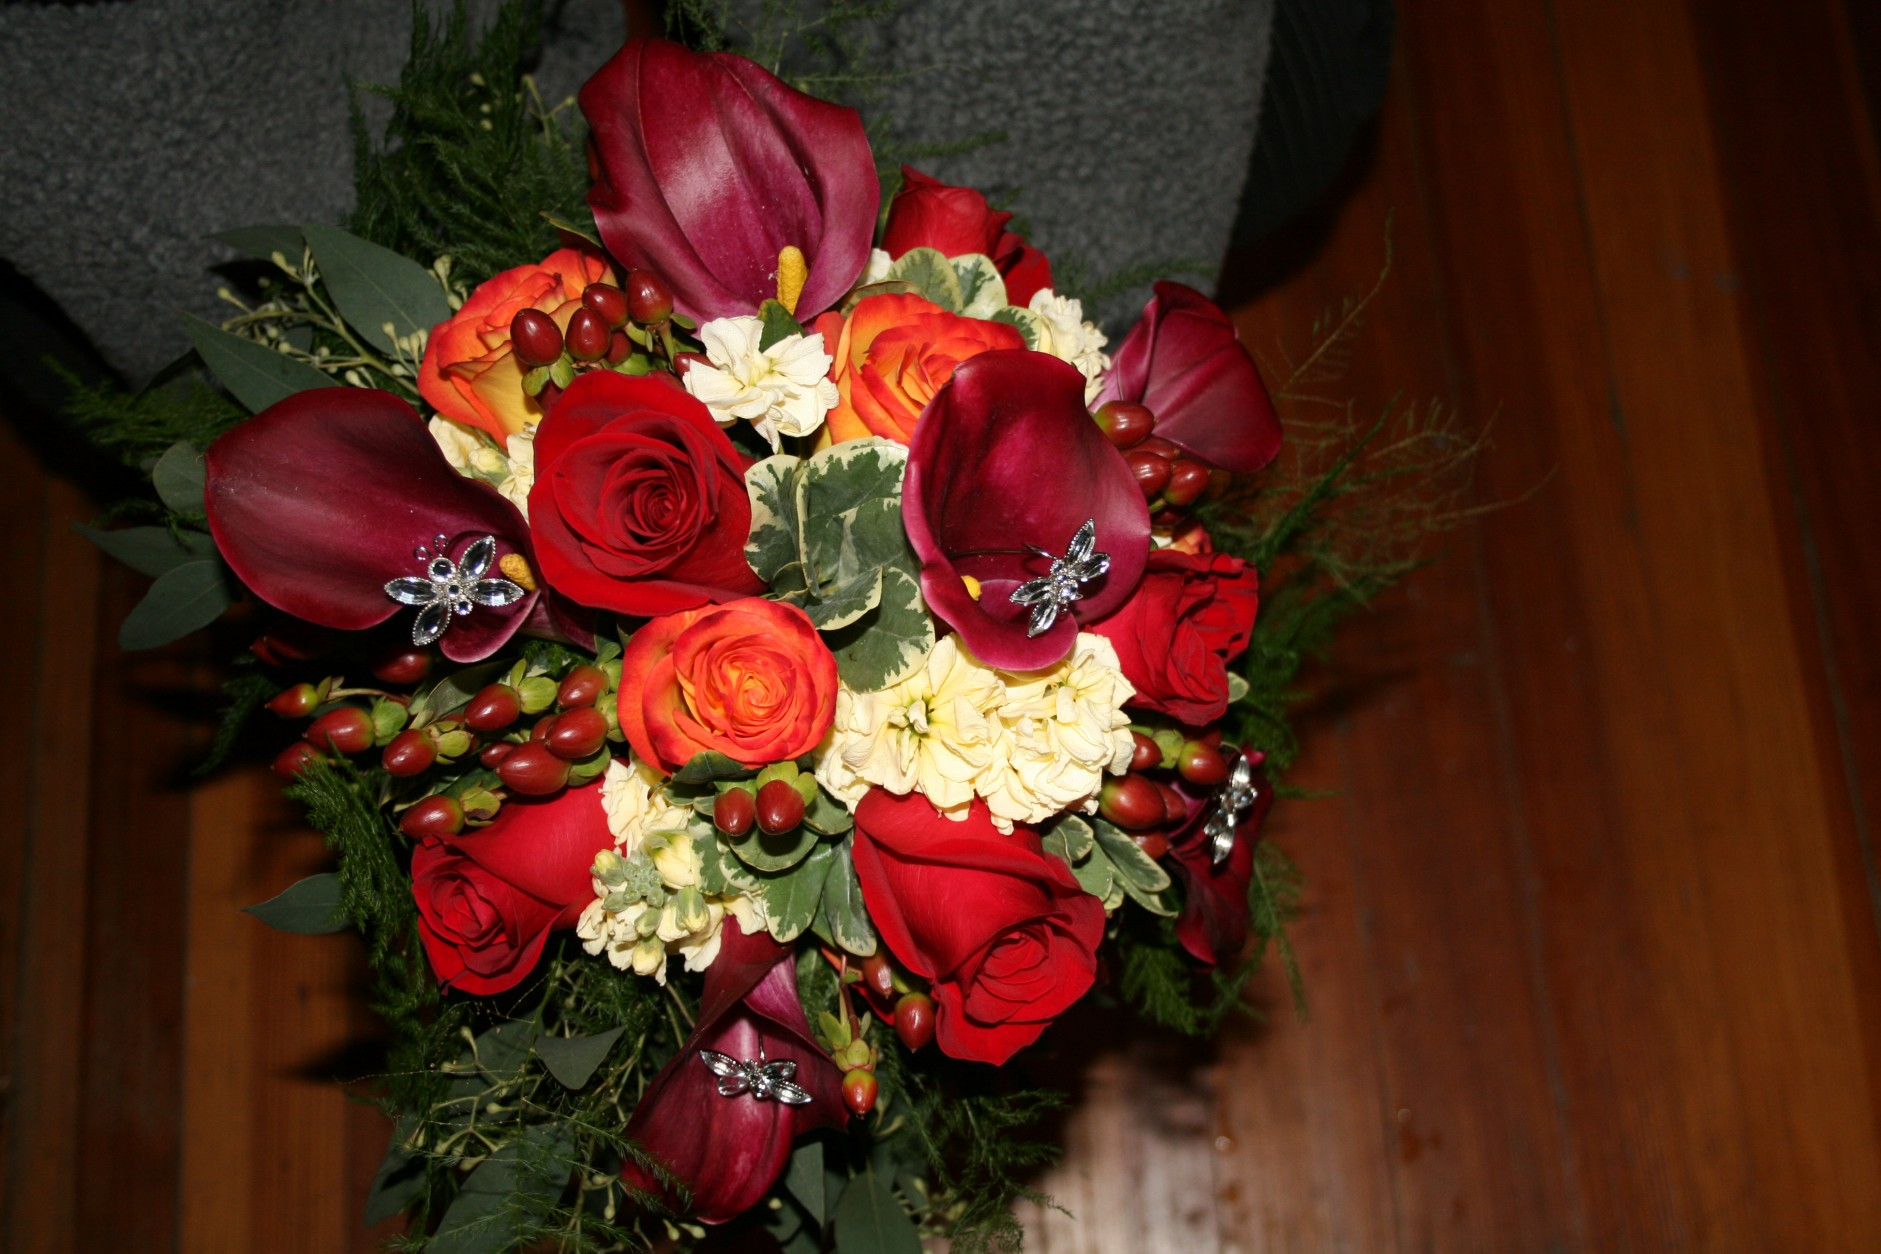 BURGANDY CALA/ RED & CIRCUS ROSE BOUQUET